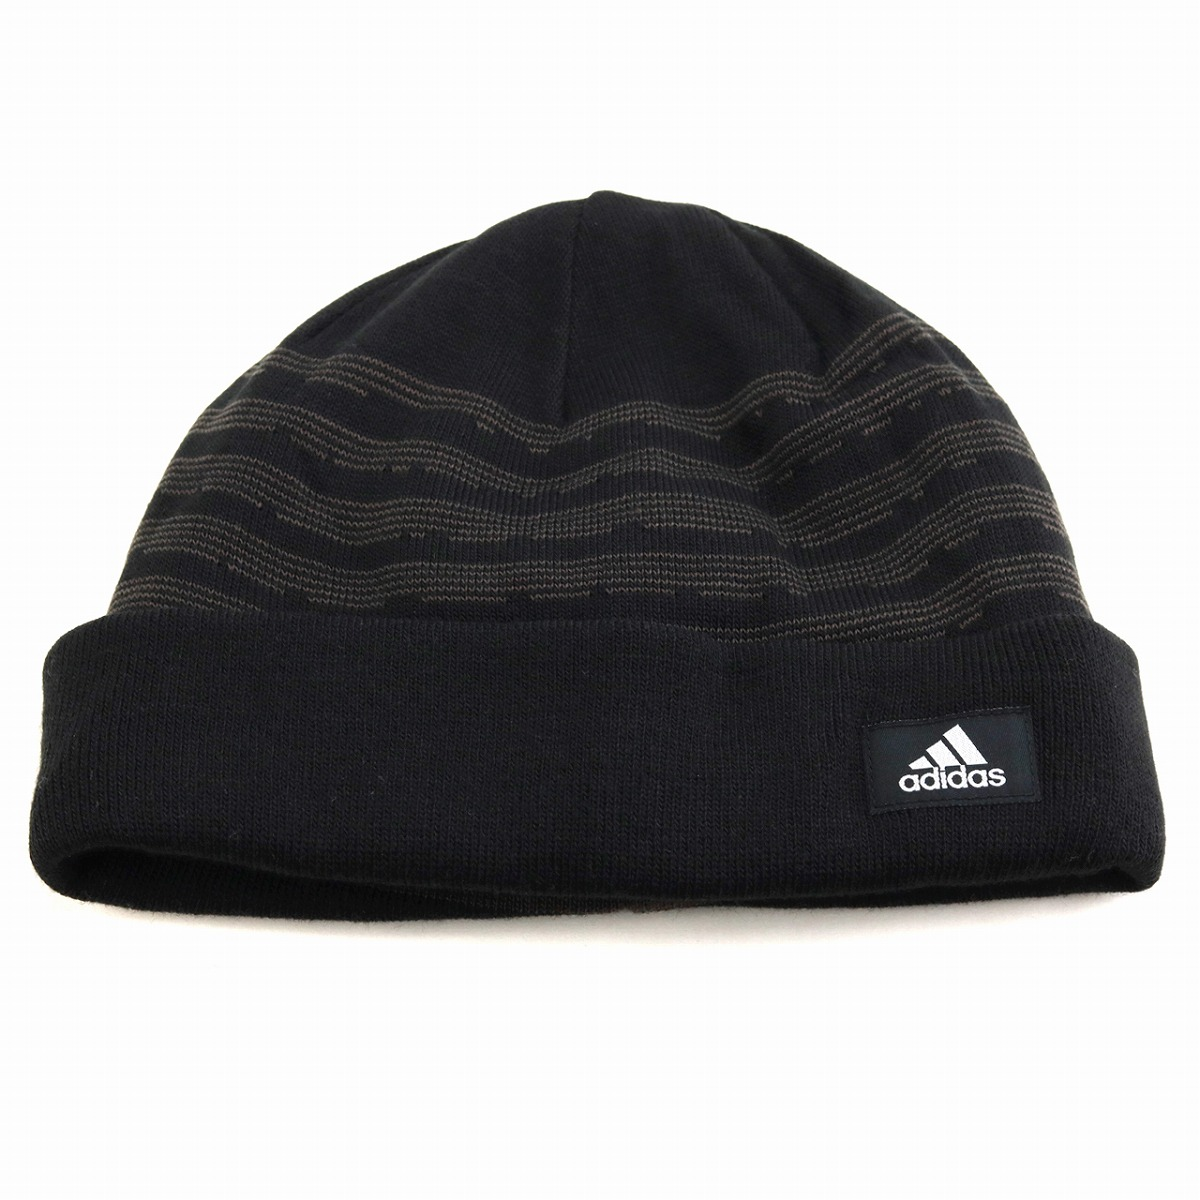 adidas knit hat men horizontal stripe knit lapel ニットワッチアディダス hat knit cold  protection brand ... 31a3c1a4323